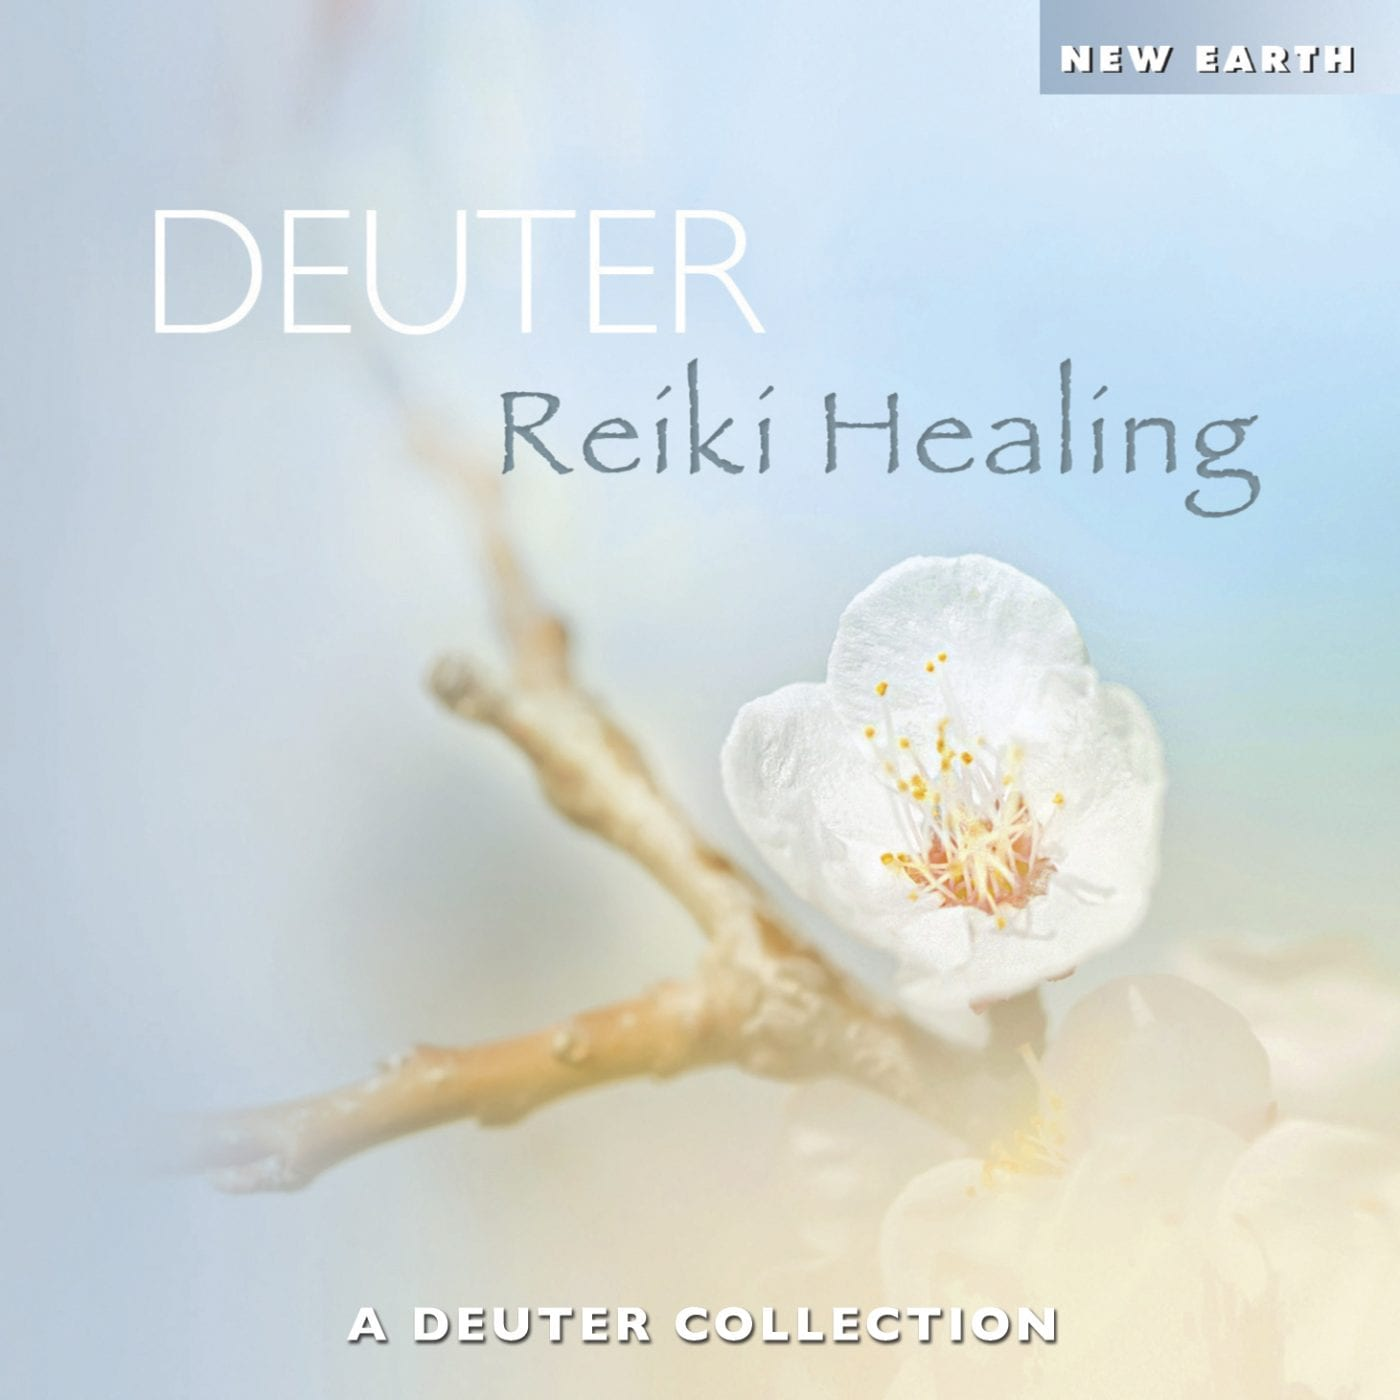 Deuter Reiki Healing Collection